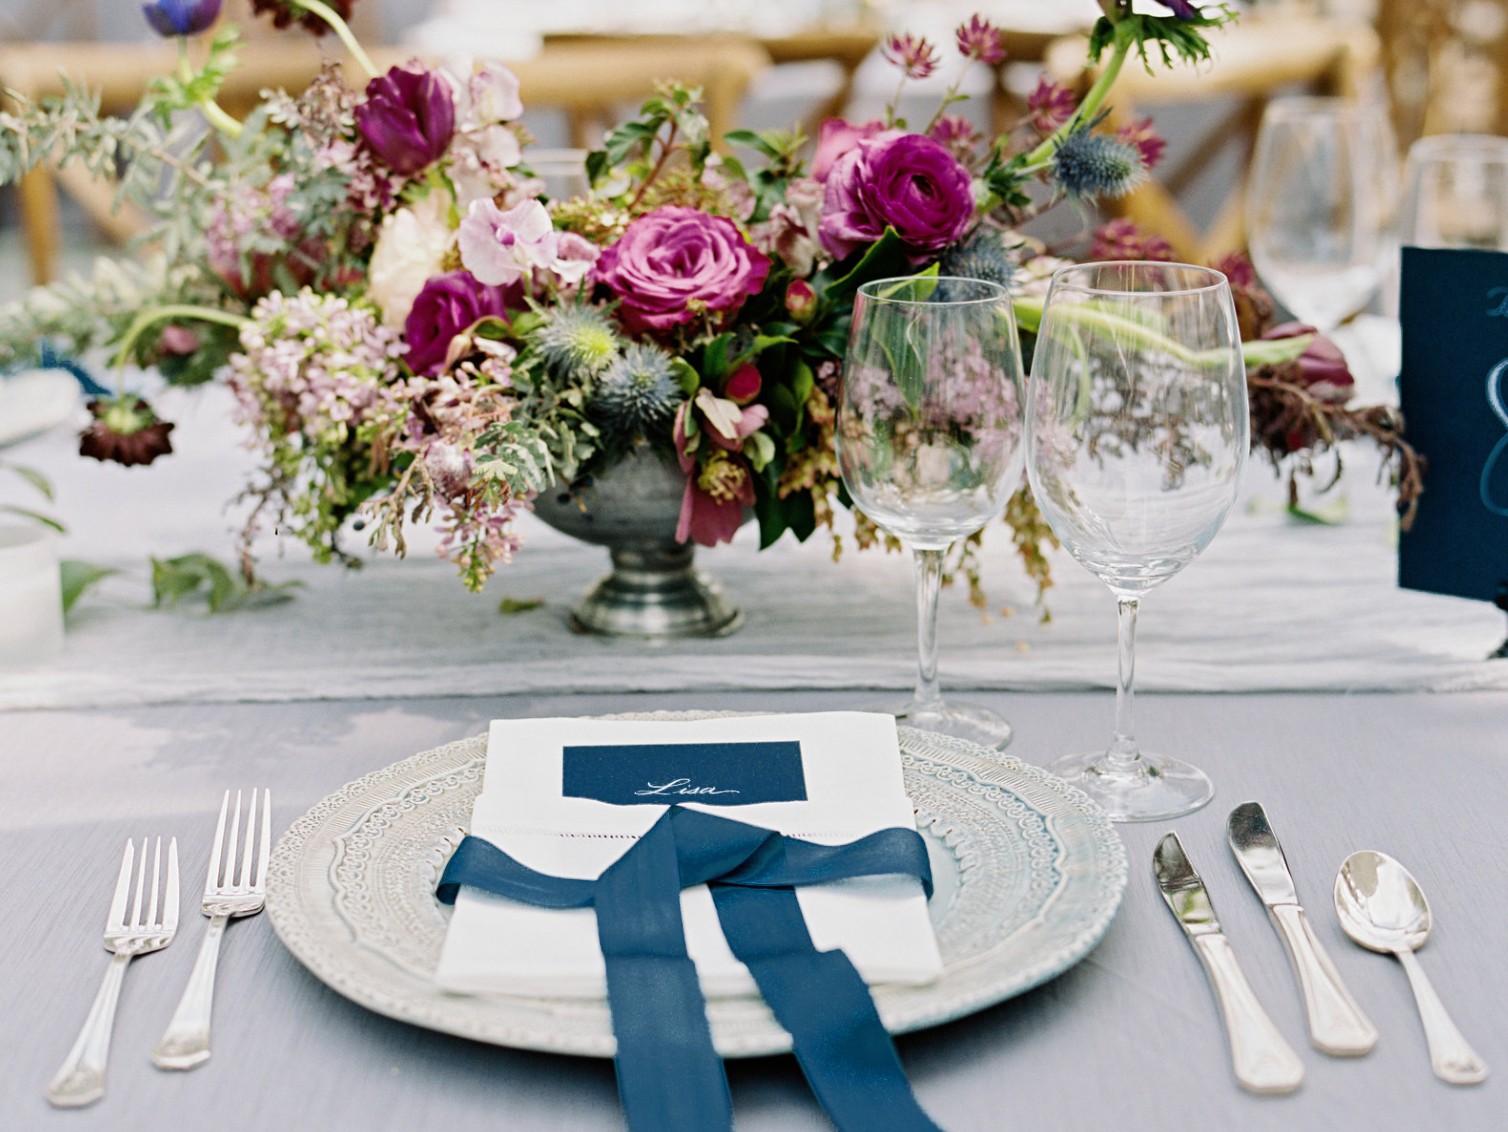 Samantha and Michael's San Antonio wedding featured on   Style Me Pretty